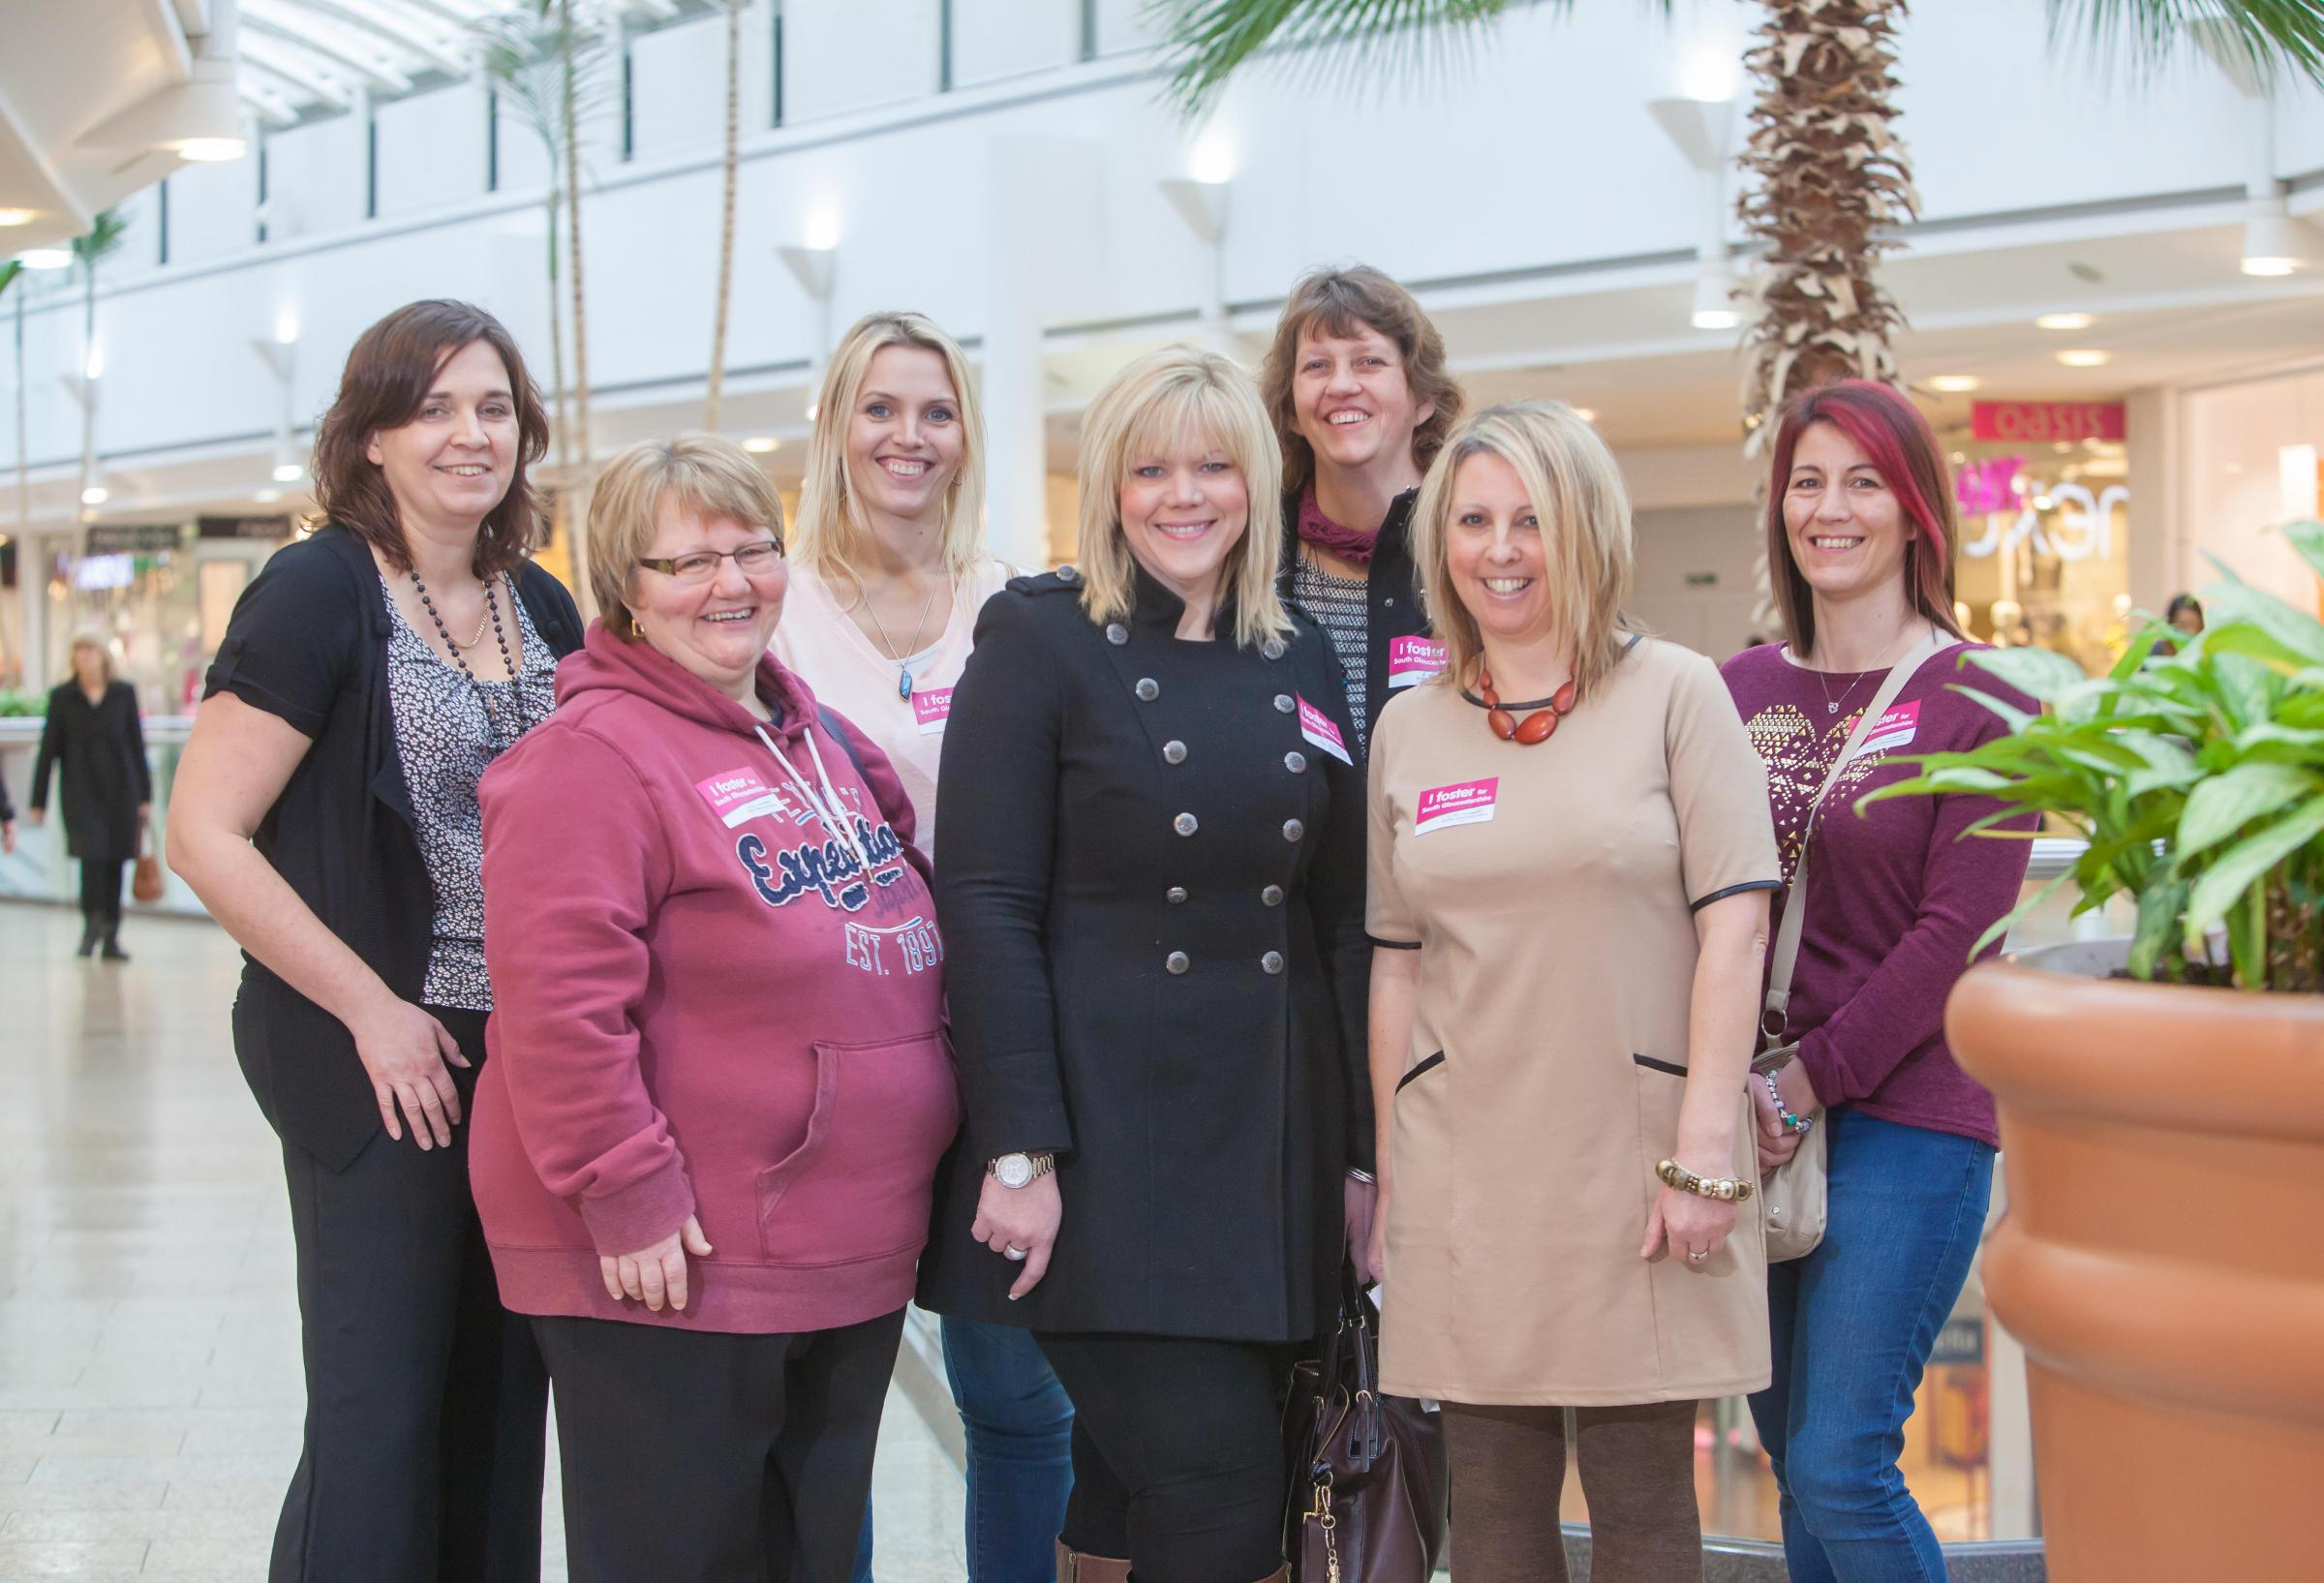 Foster carers Lucy Fullard, Sandra Smith, Kelly Bevan, Lucy Pook, Jacqueline Jarrett, Jackie Coombs and Rachael Rushent at the launch of South Gloucestershire Council's foster carer recruitment drive